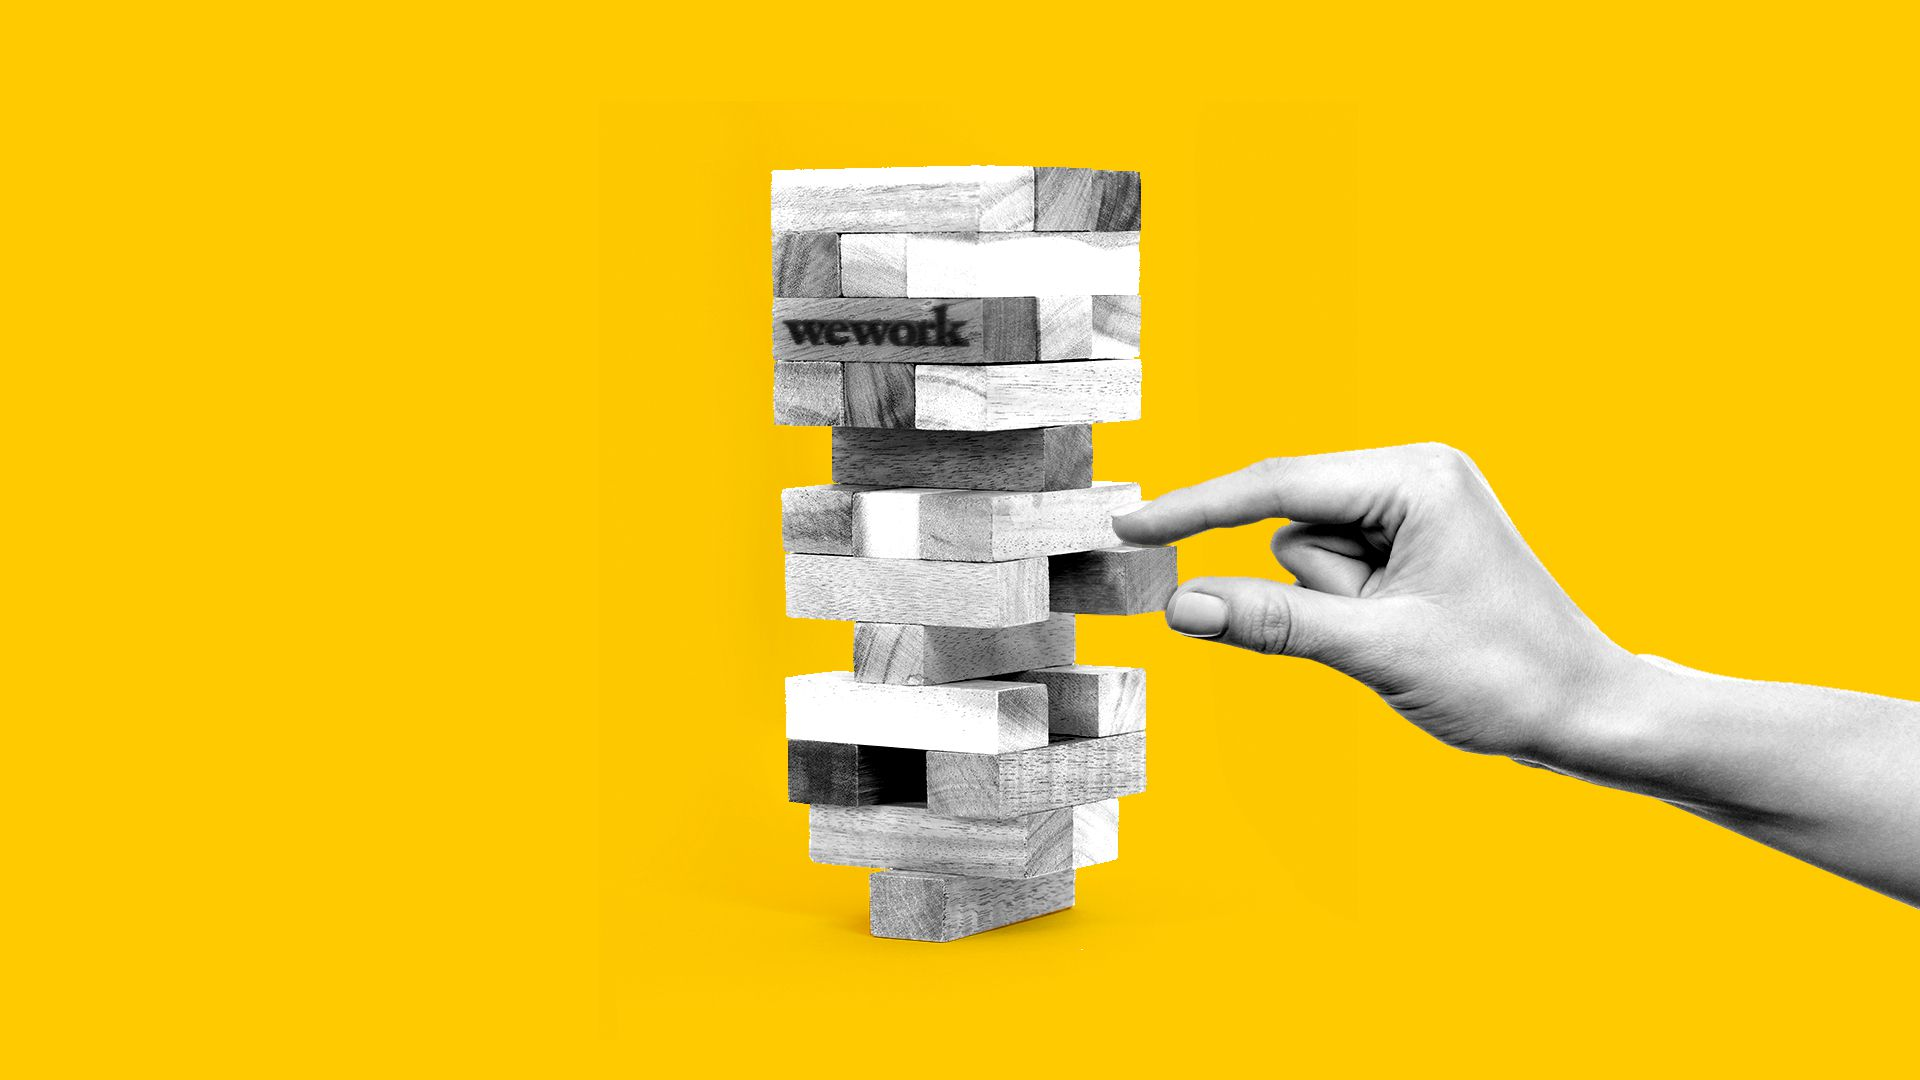 In this illustration, the WeWork logo is on a Jenga piece that balances precariously as someone removes a Jenga block underneath it.